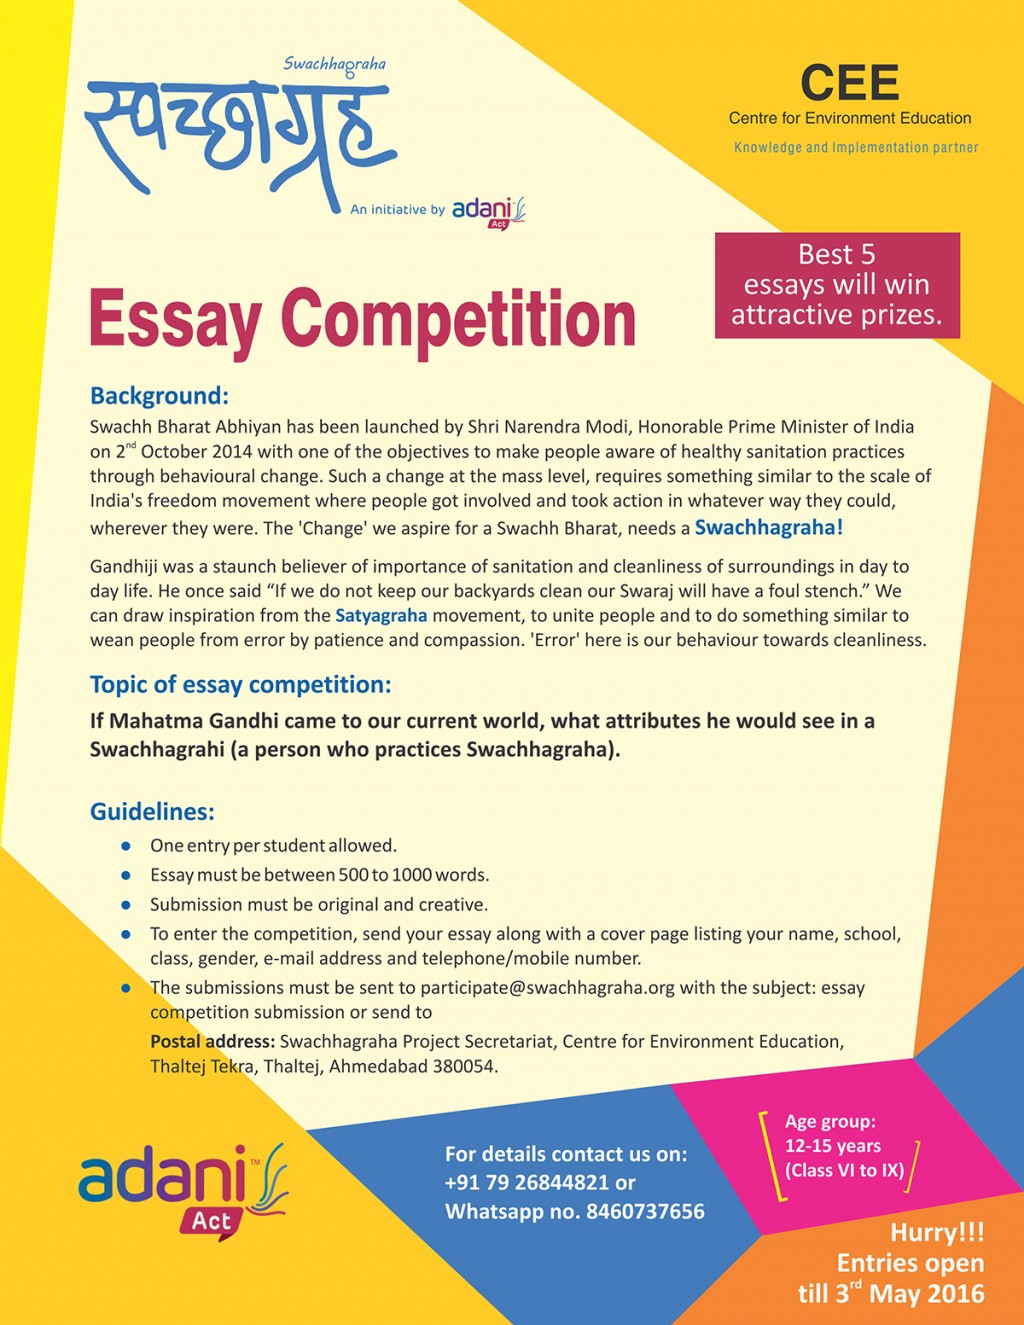 011 20180129171946essay20competition Essay About Cleanliness In School Phenomenal On Toilet And Its Surrounding Large